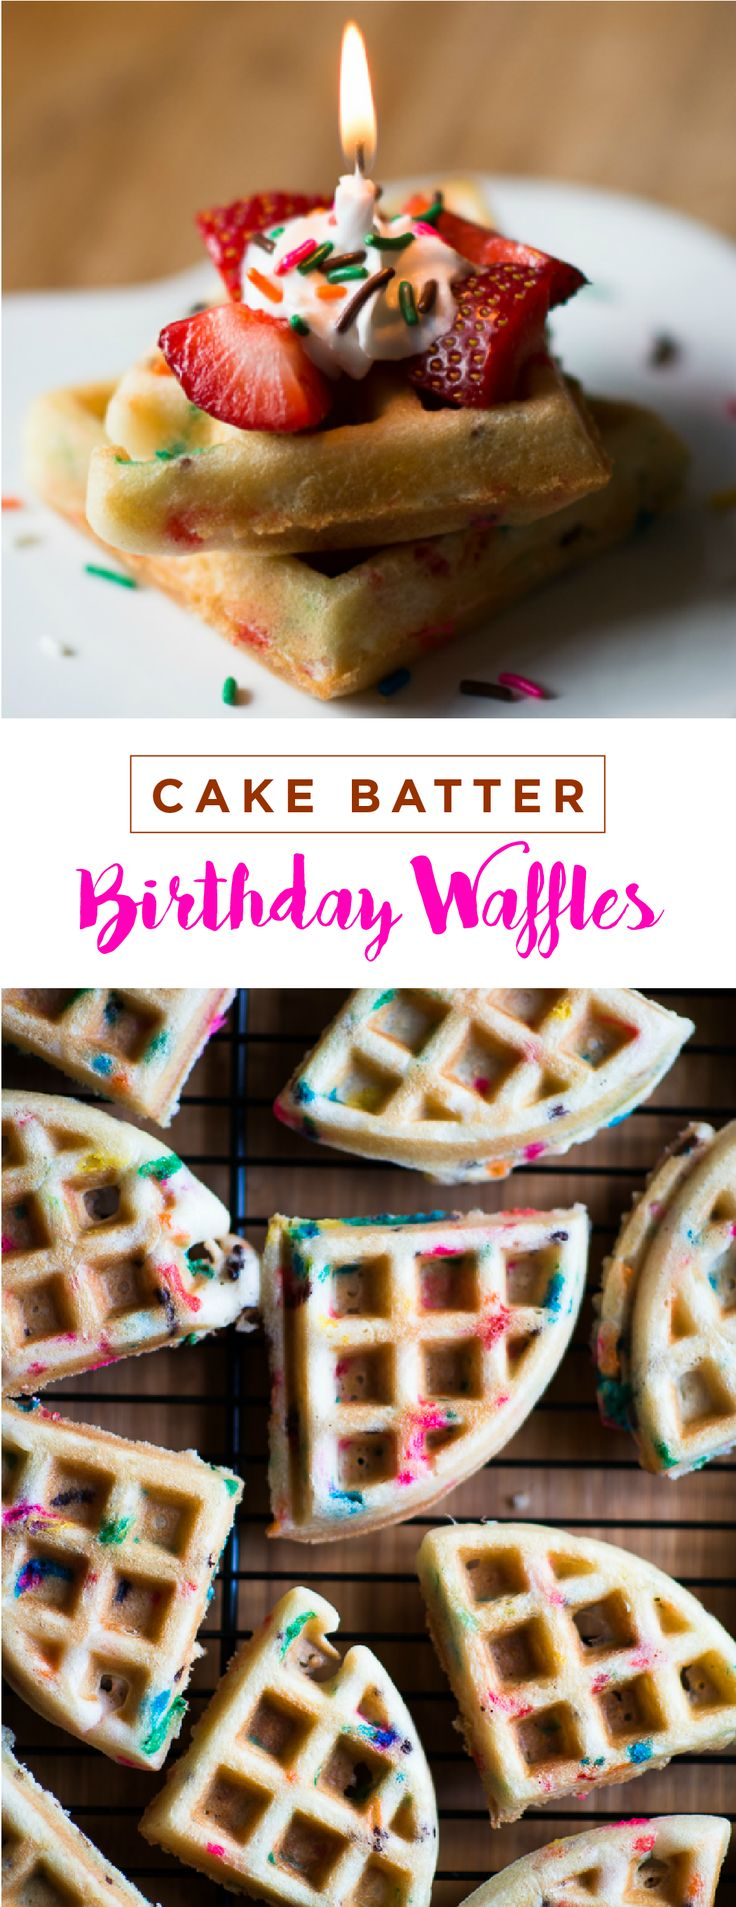 Wake the birthday girl or boy up on their special day with these festive Cake Batter Birthday Waffles. This simple recipe is made from a white cake mix and a few simple ingredients. Decorate them with fresh fruit, a candle, and more sprinkles for the ultimate birthday treat idea!